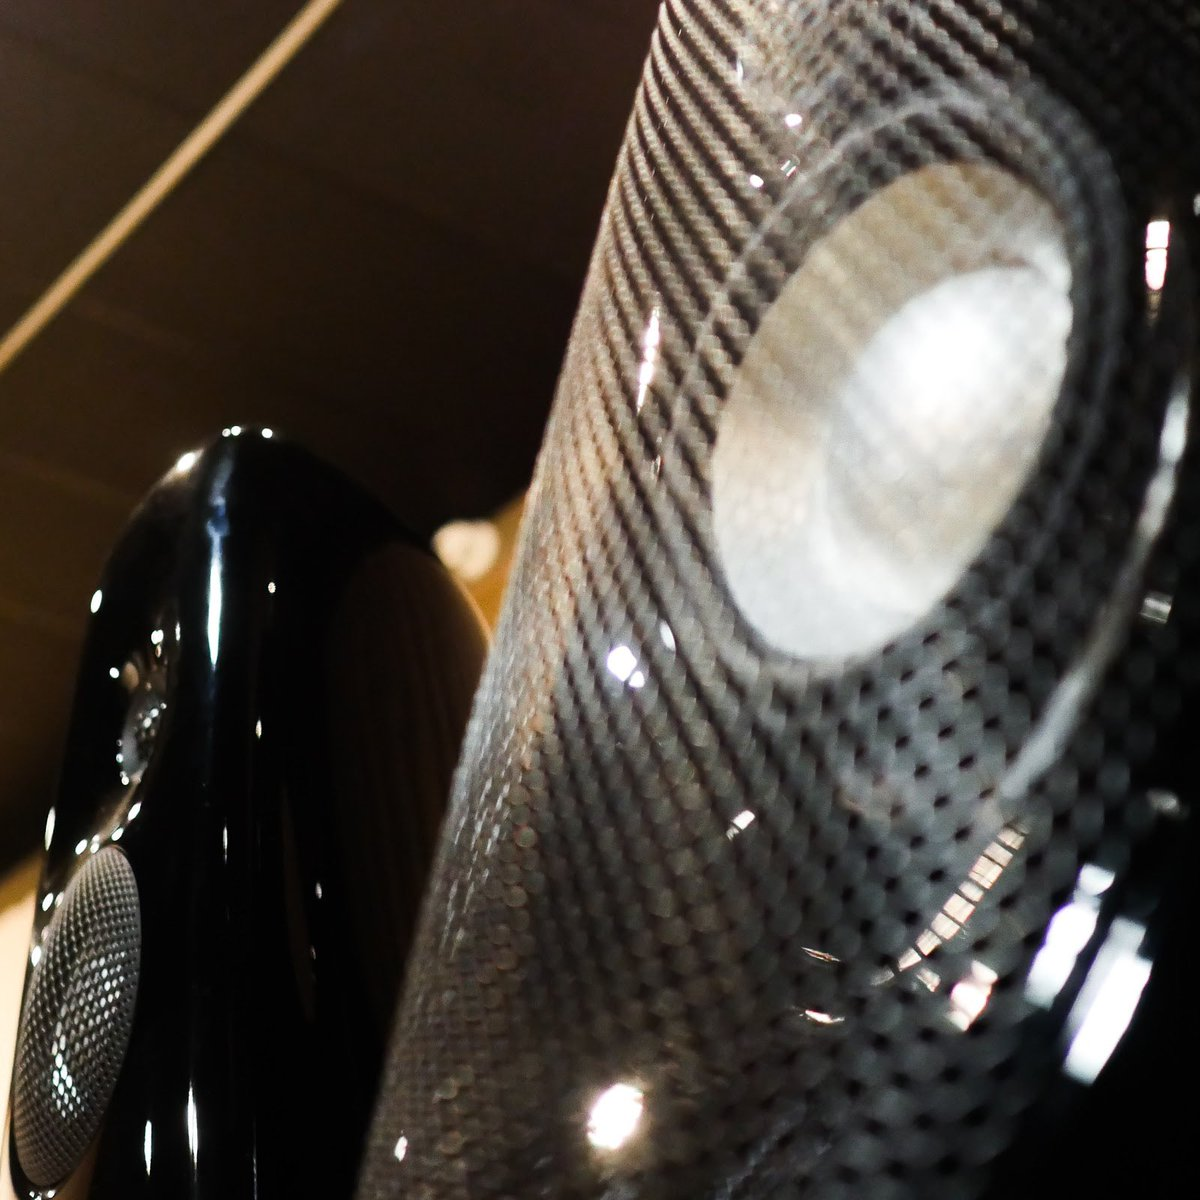 TGIF everyone! As you're putting together your weekend playlist, give some thought to upgrading your speakers if need be. Then, get in your car and spend an afternoon with us and we'll make sure your system has the BEST speakers possible!  #hifi #tgif #weekend #music #speakerspic.twitter.com/y3uaHNgRGP